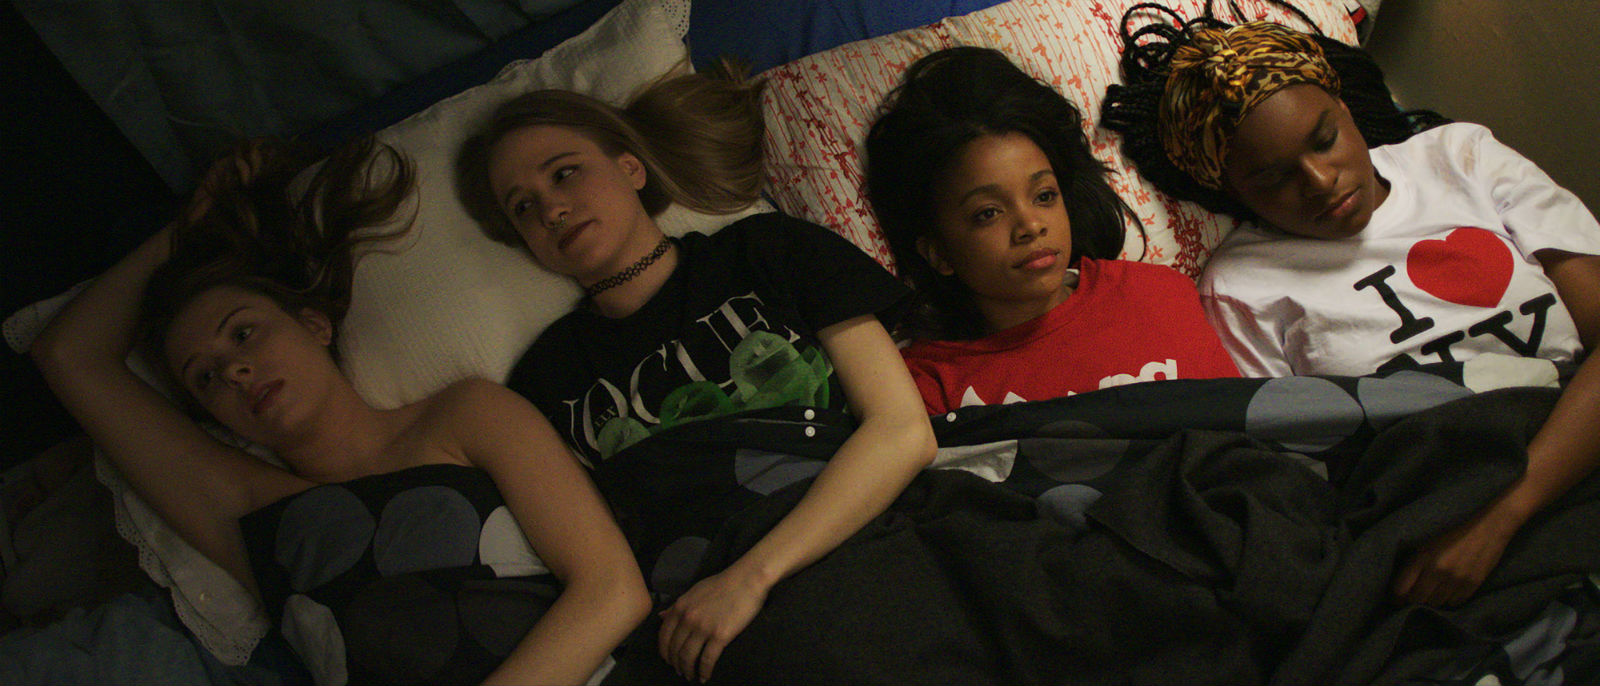 Night: exploring racism under the covers.